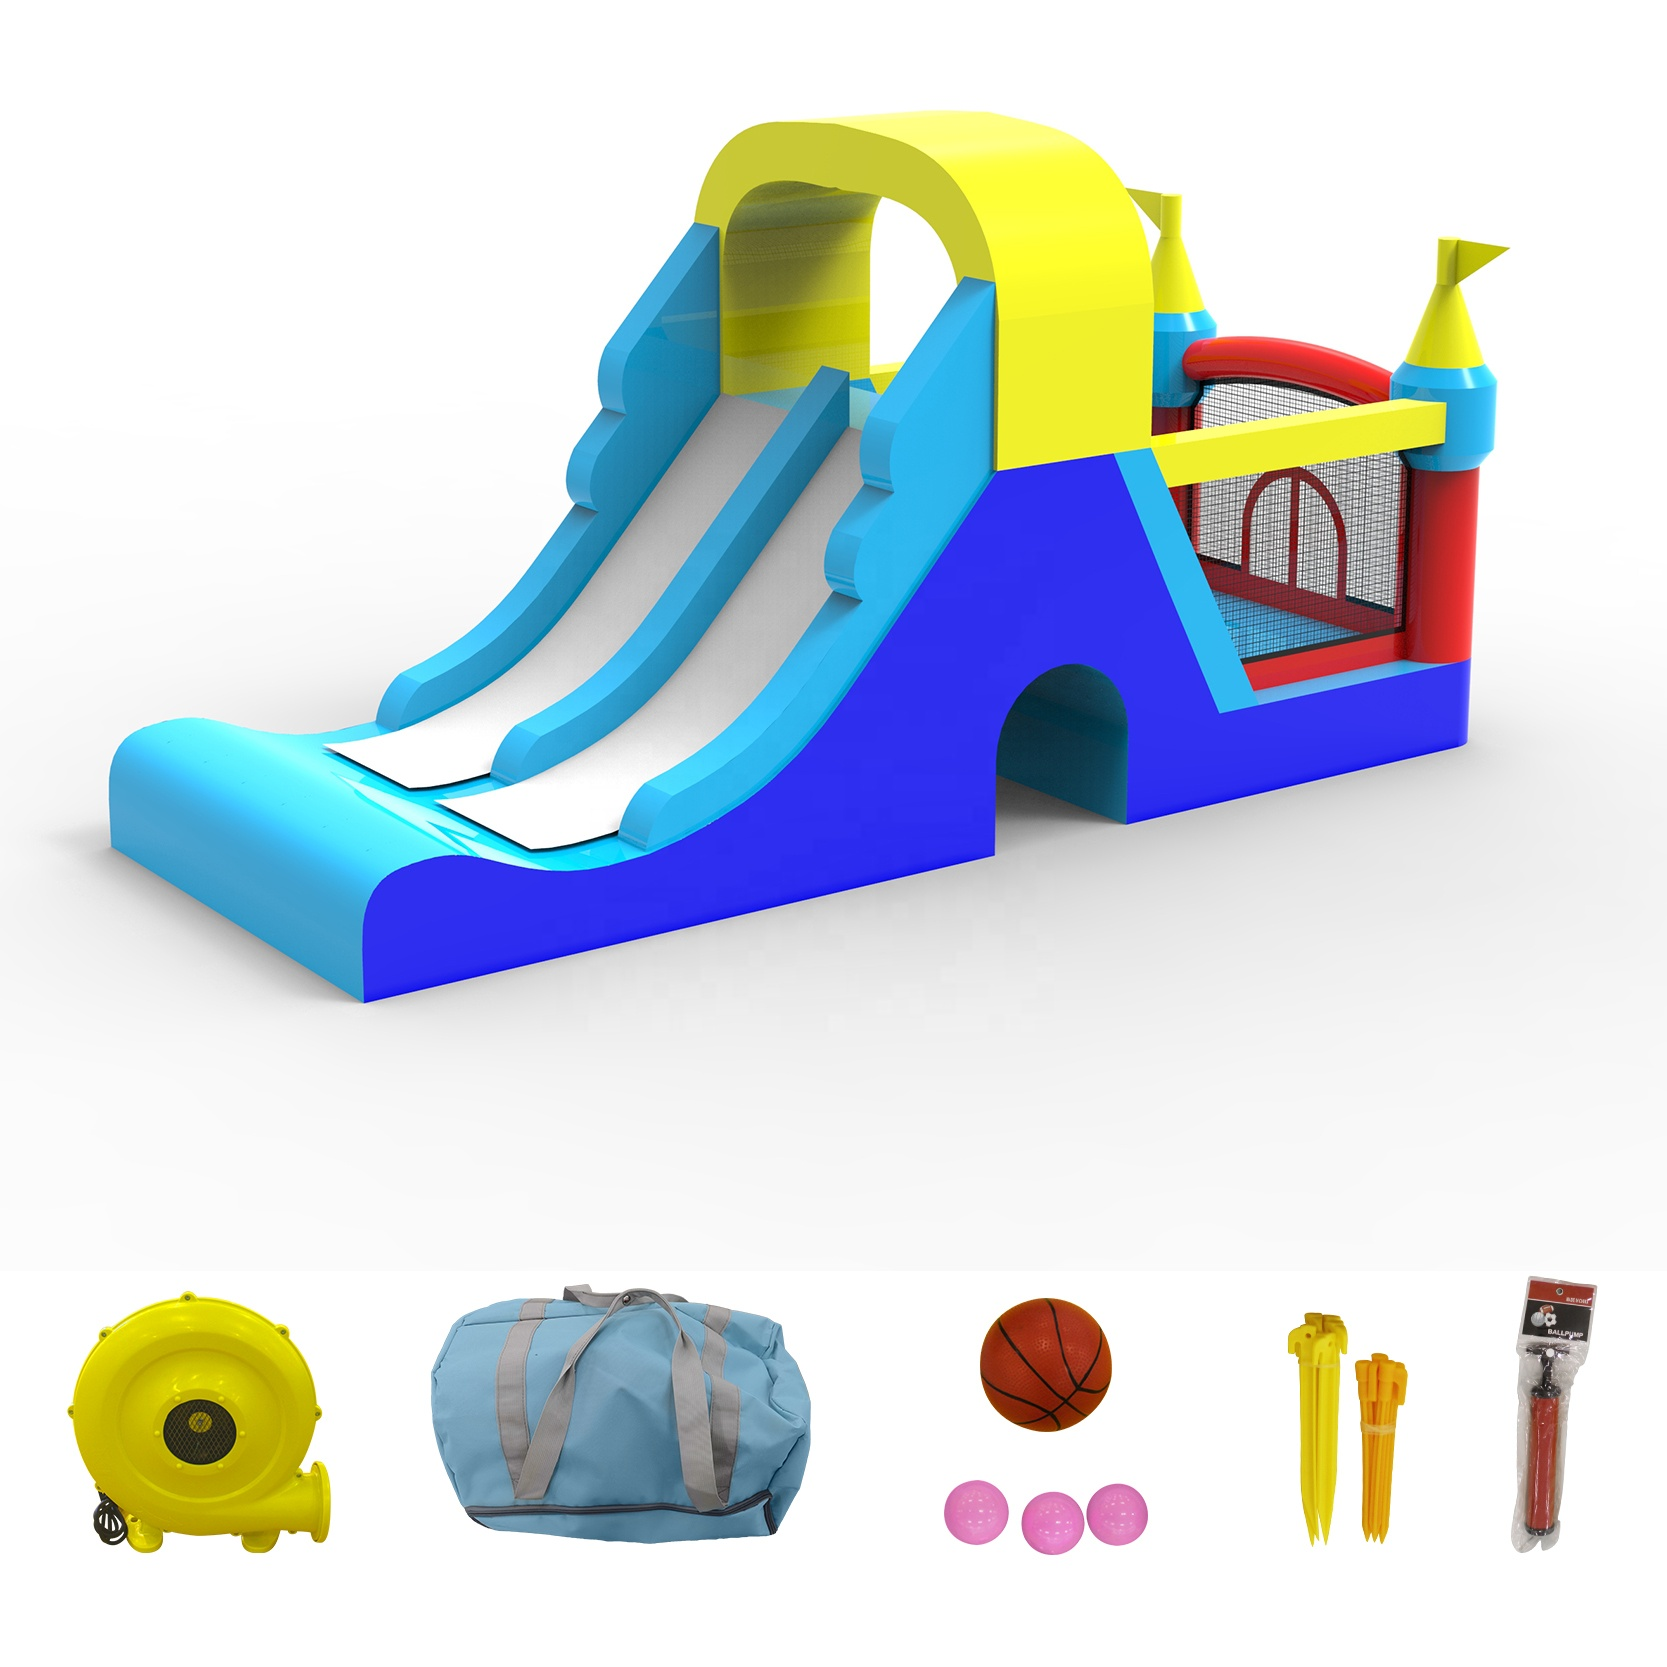 New arrival inflatable bounce jumping house for children Oxford cloth games kids